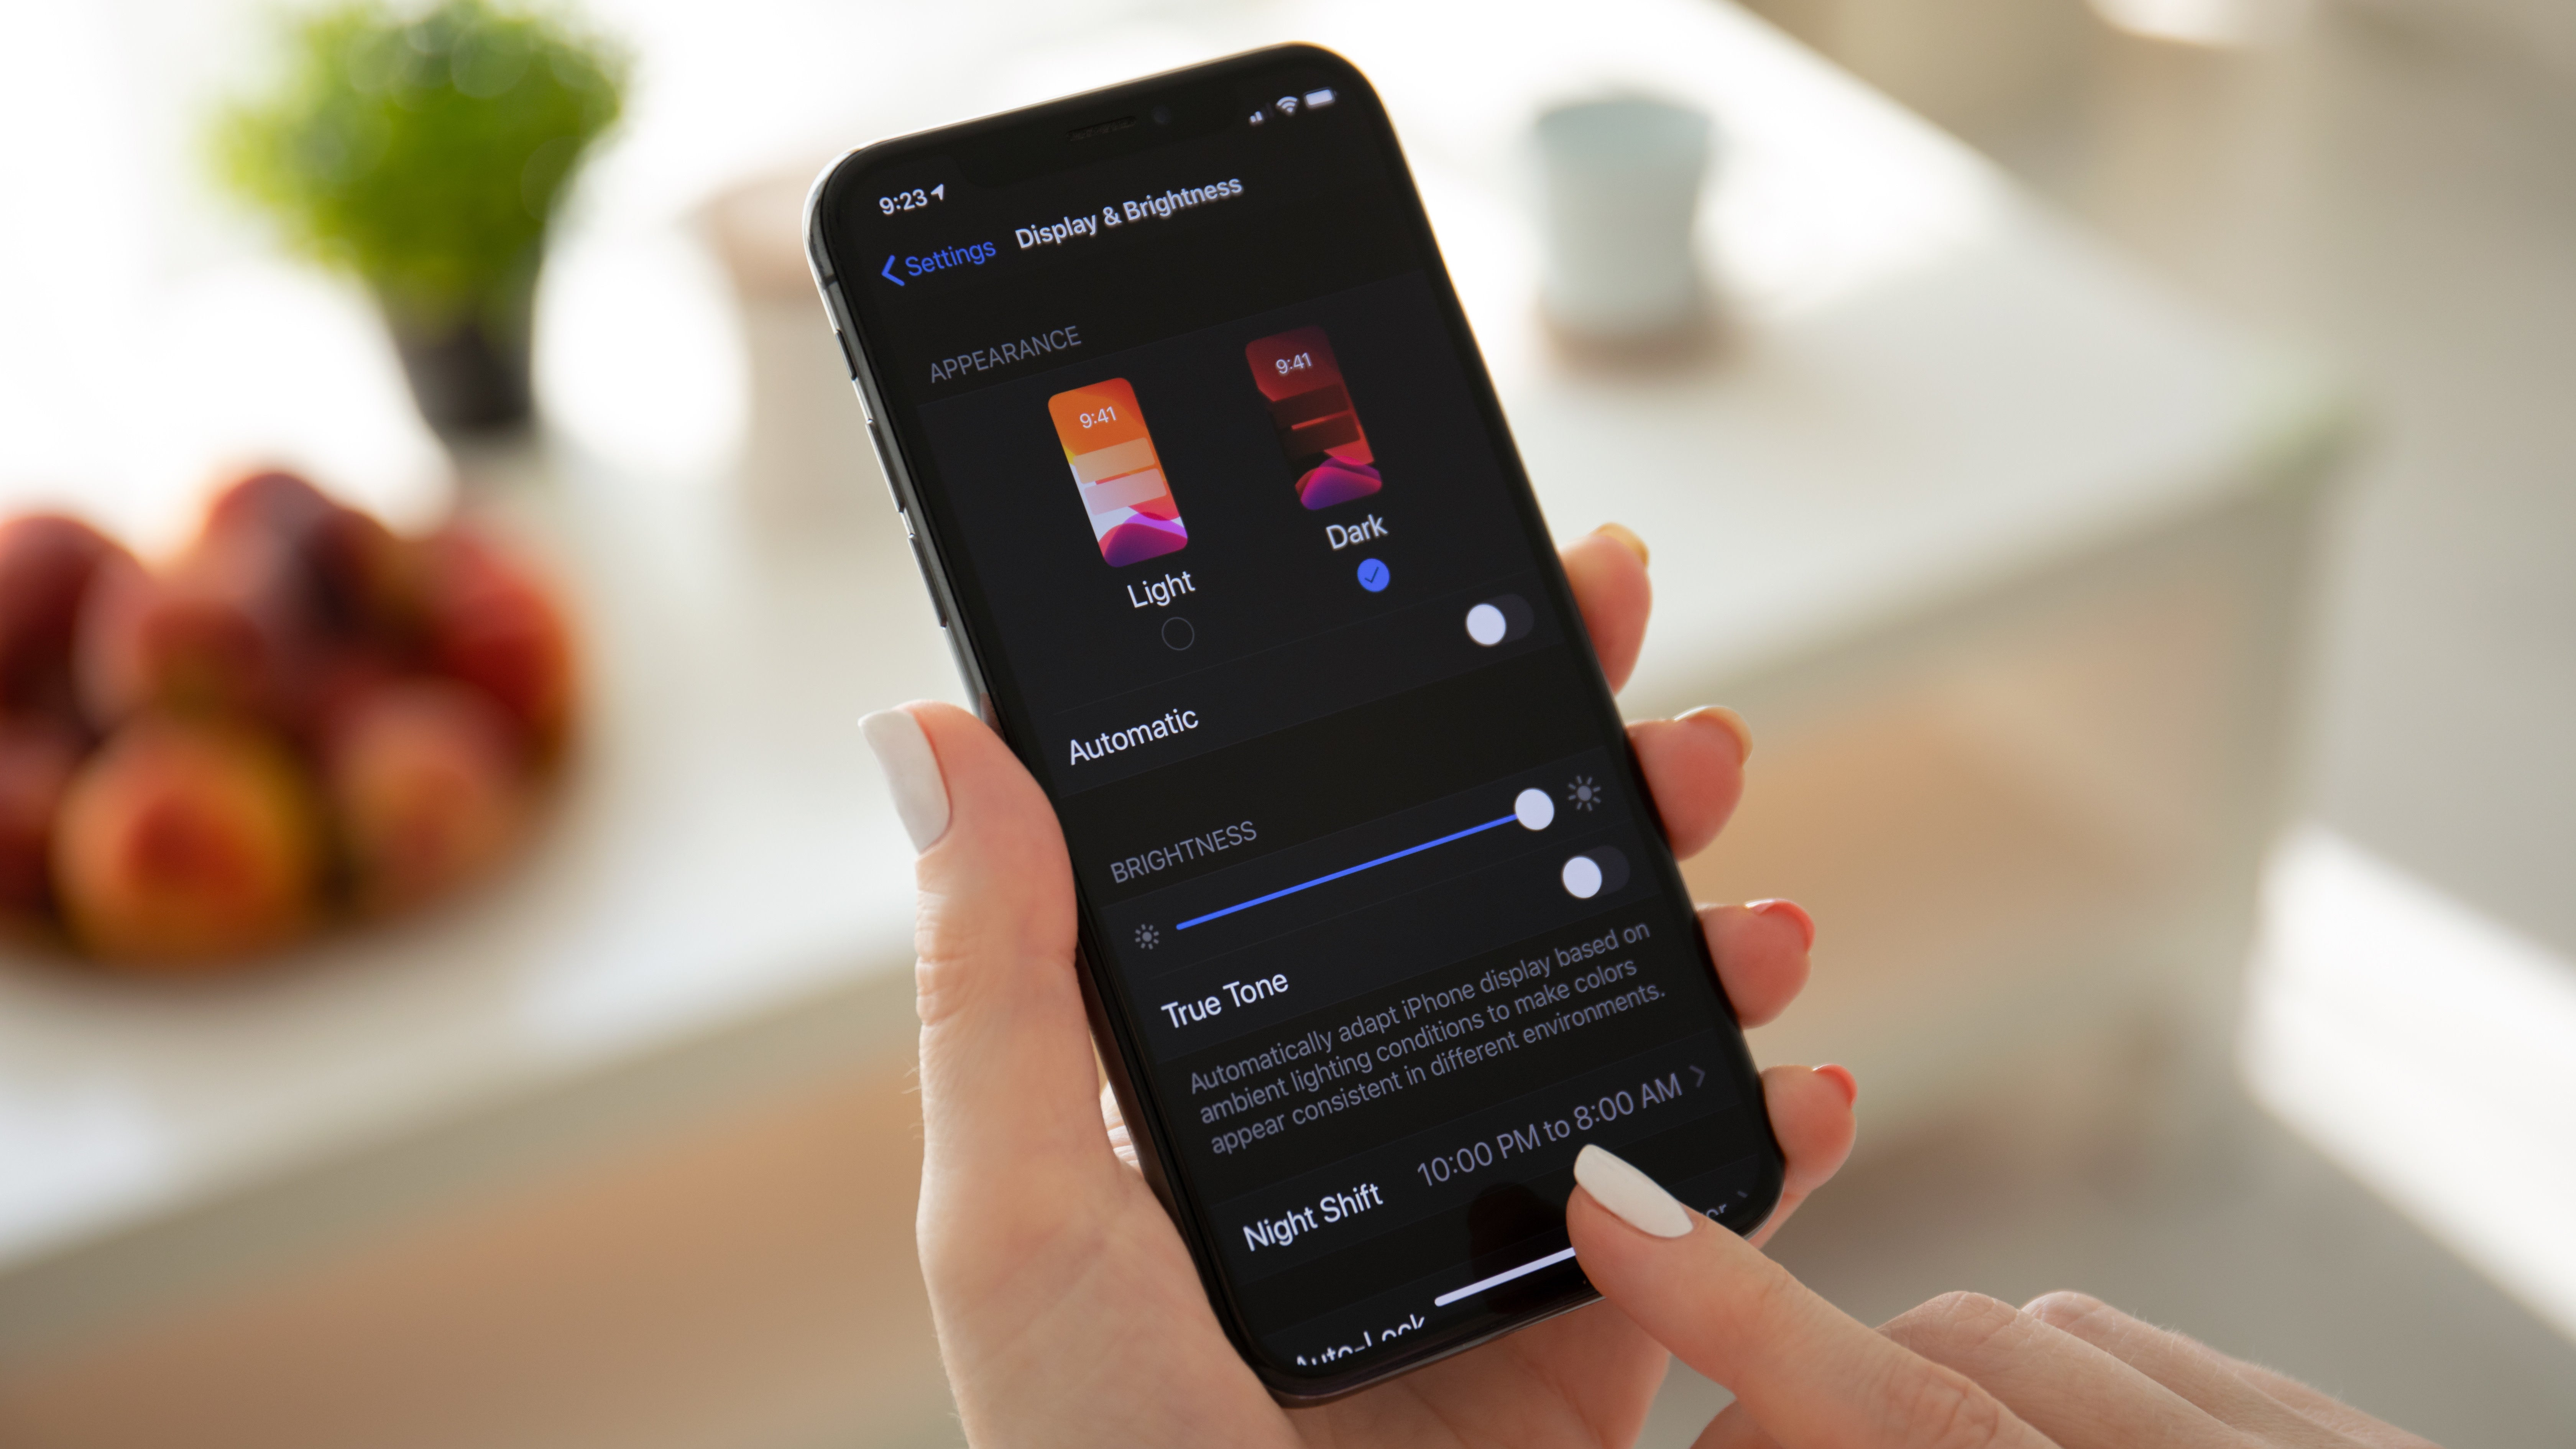 How To Force All Apps To Use Dark Mode In iOS 13